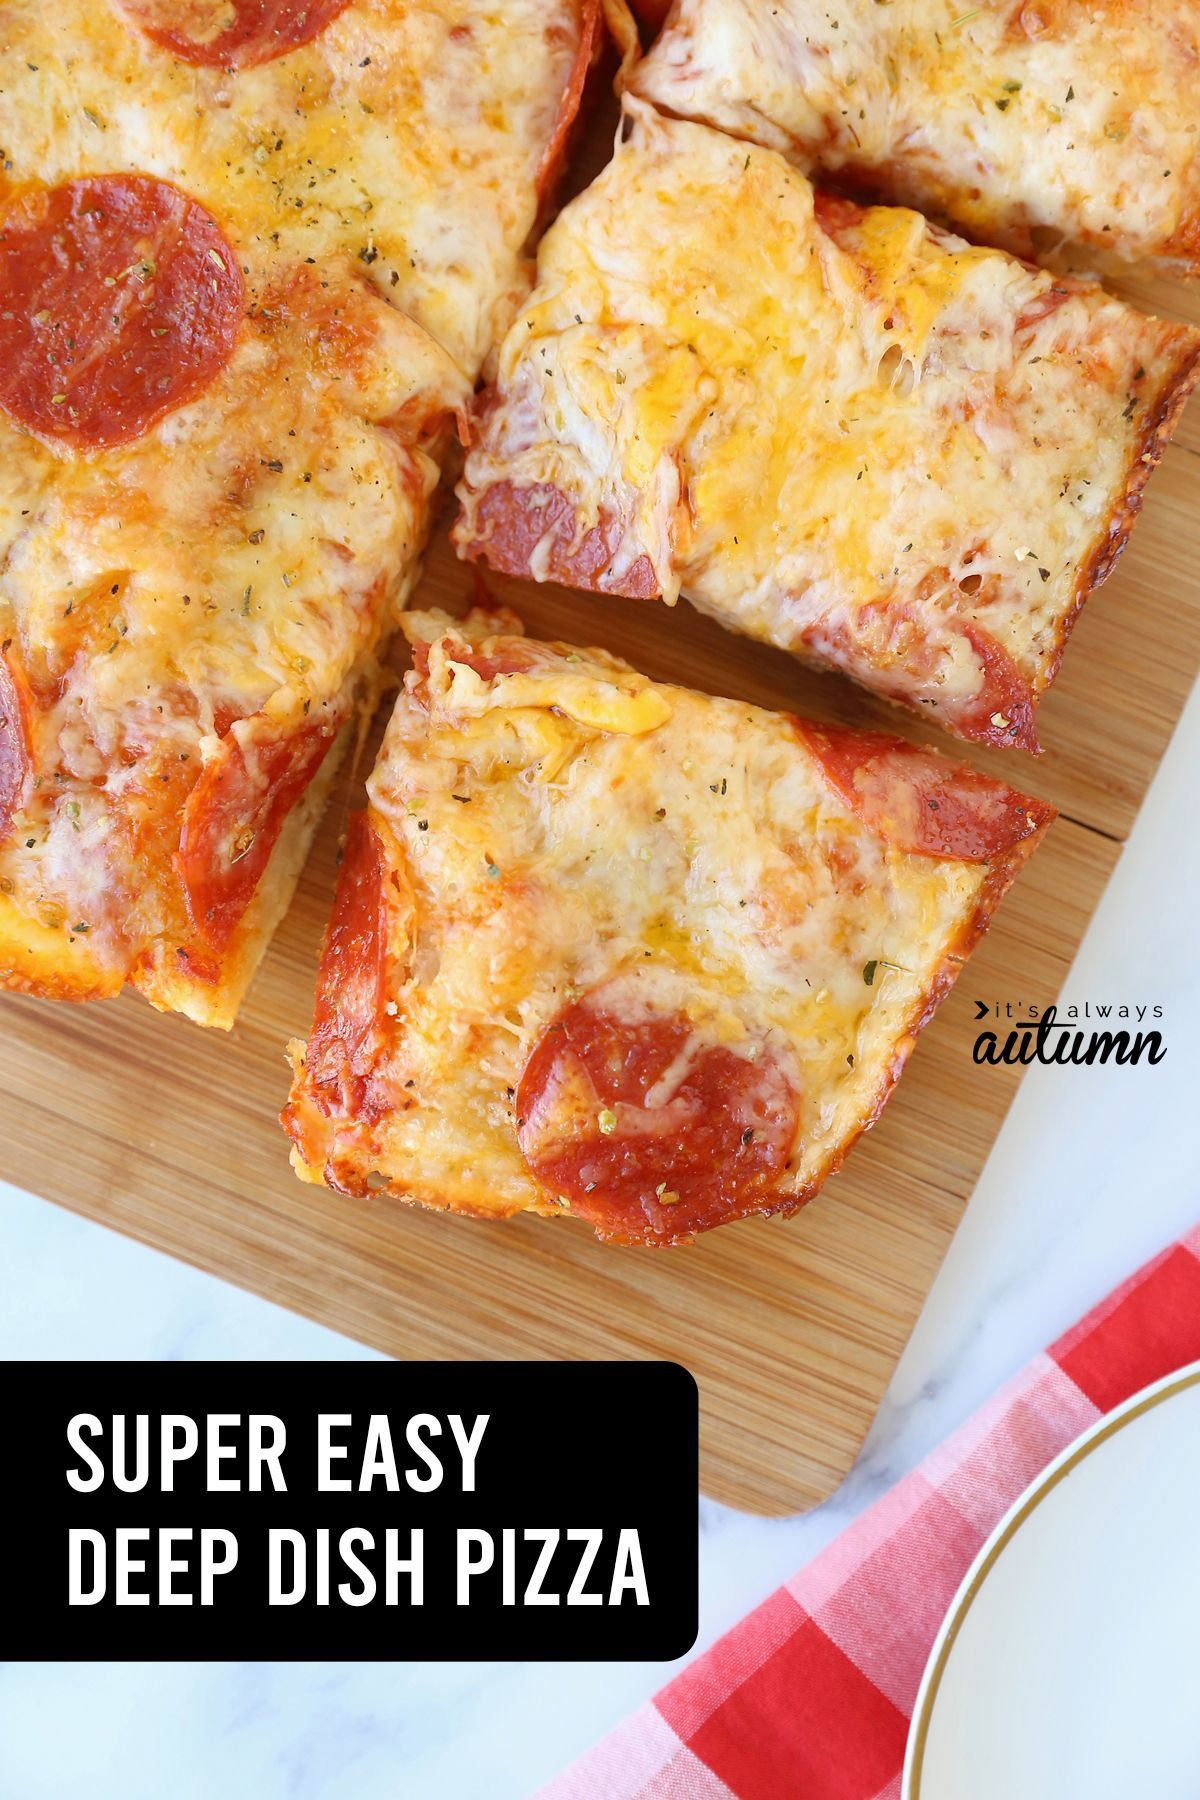 This crazy easy deep dish pizza has a gorgeous this crust that's made with just 4 ingredients!